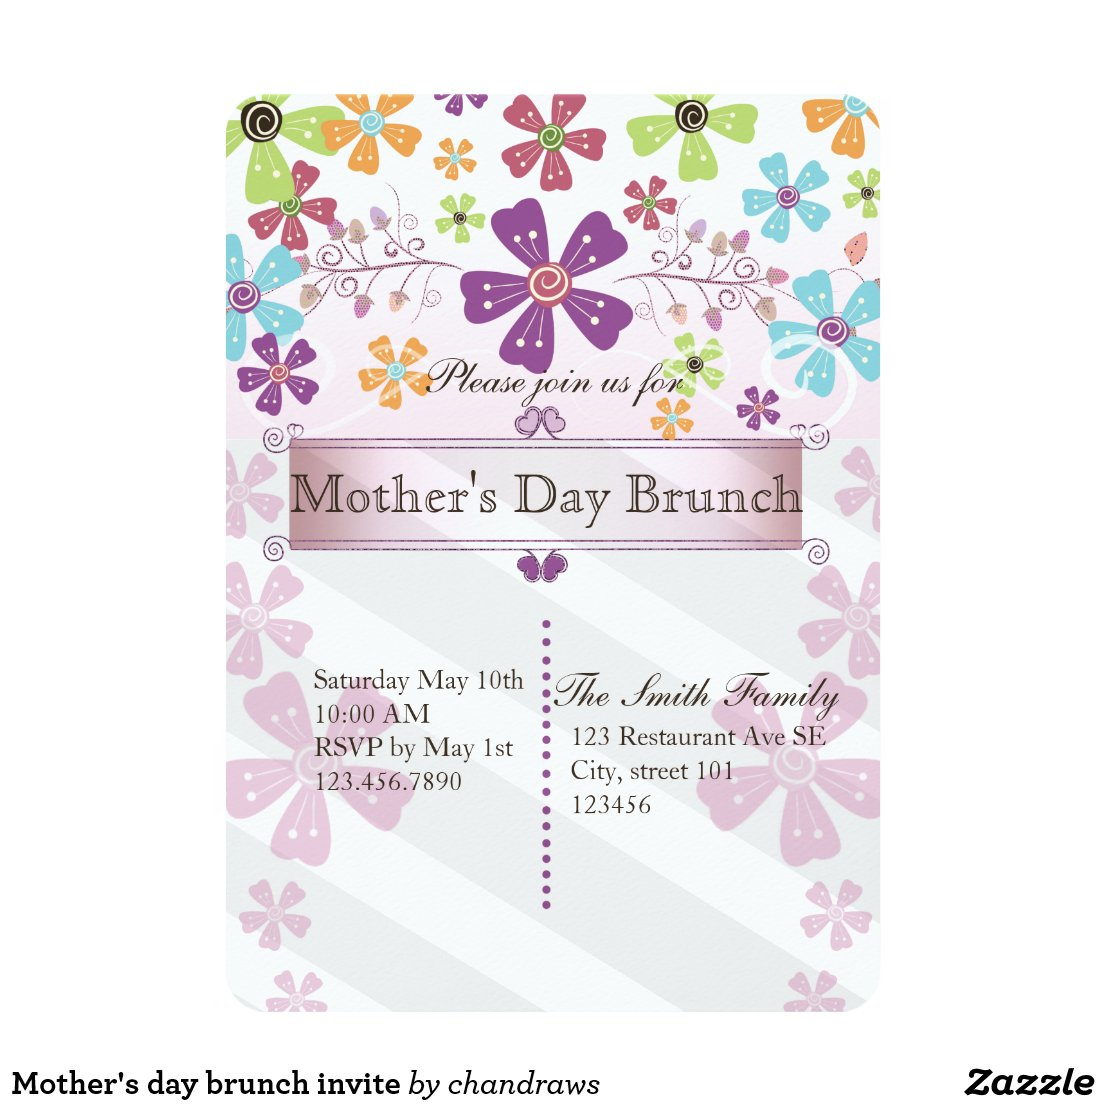 Mother's day brunch invite